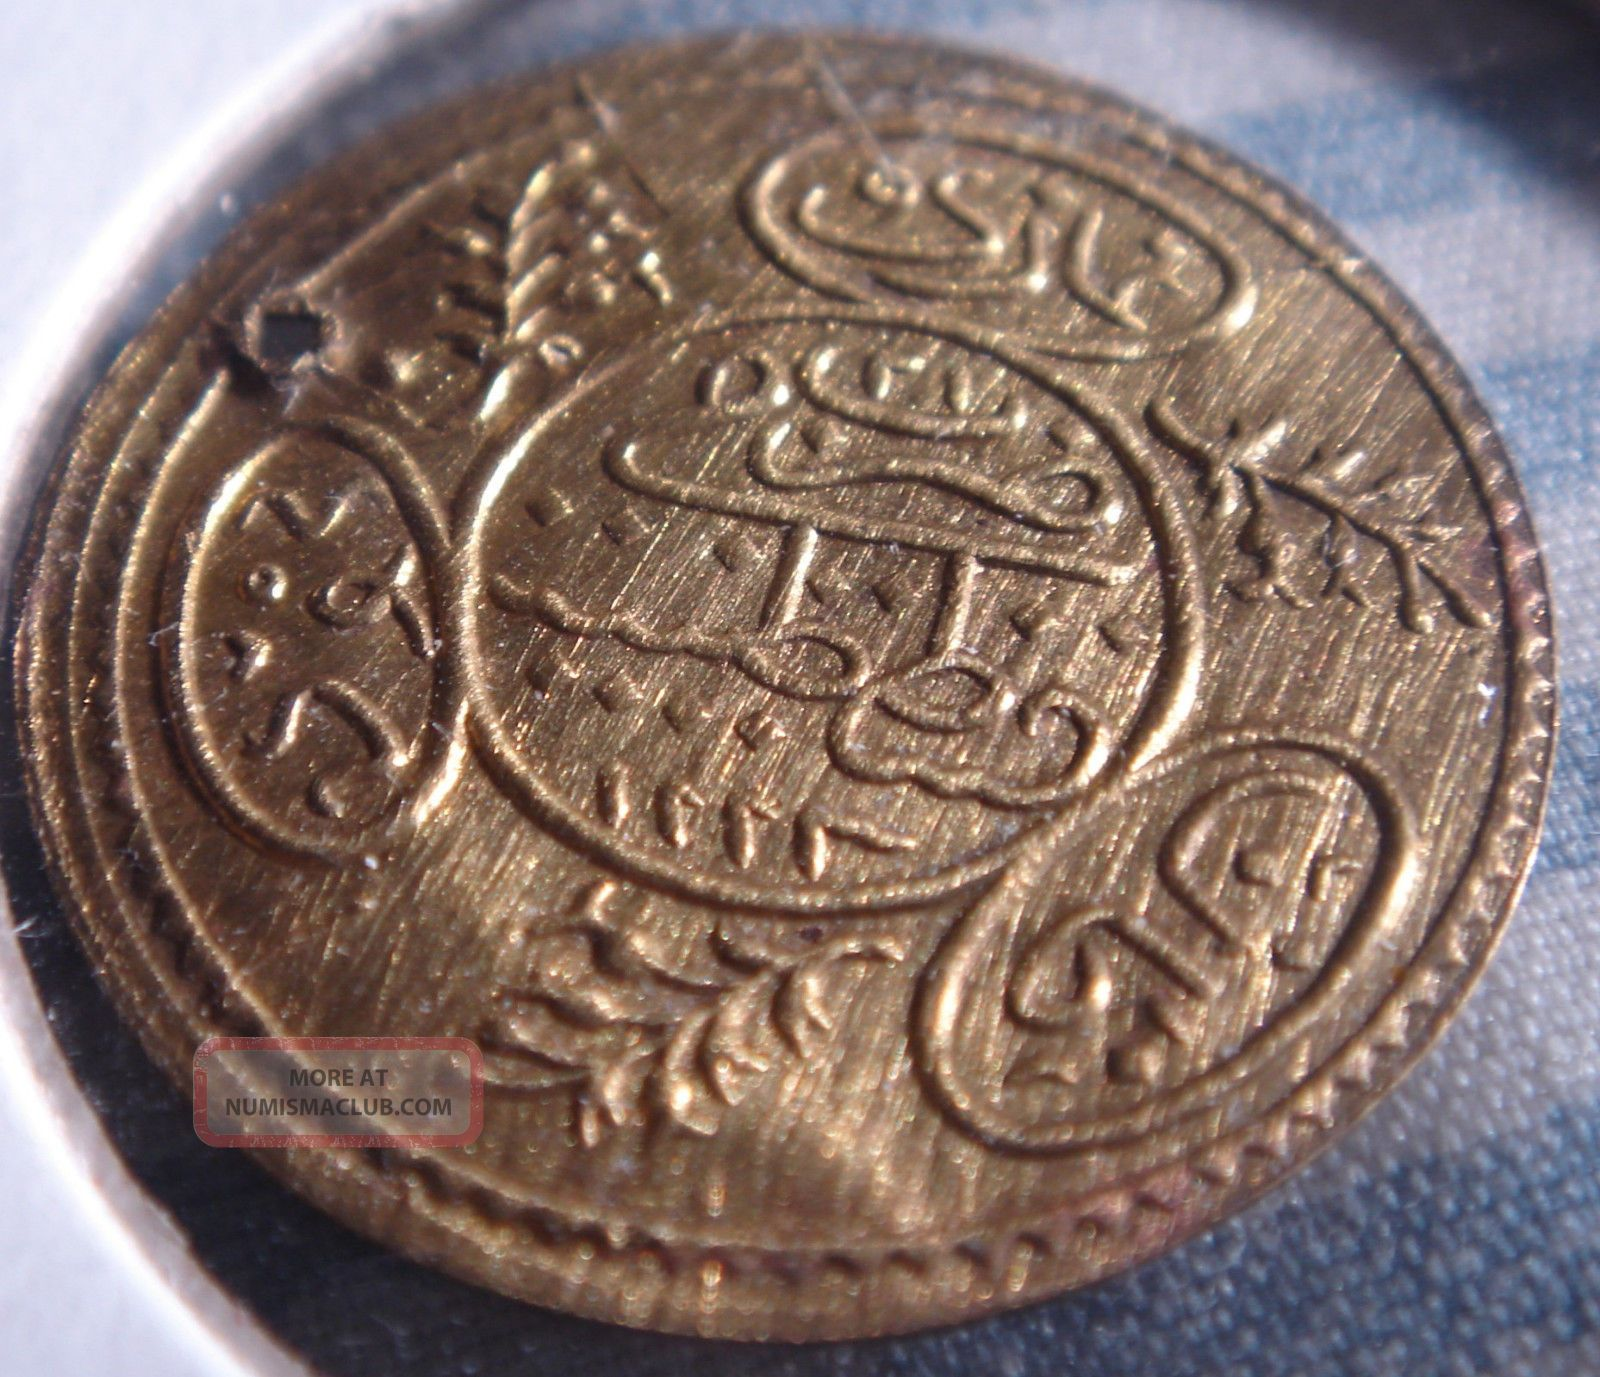 Unknown Turkey Or Ottoman Empire Gold In Color Coin Or Token Coins: World photo